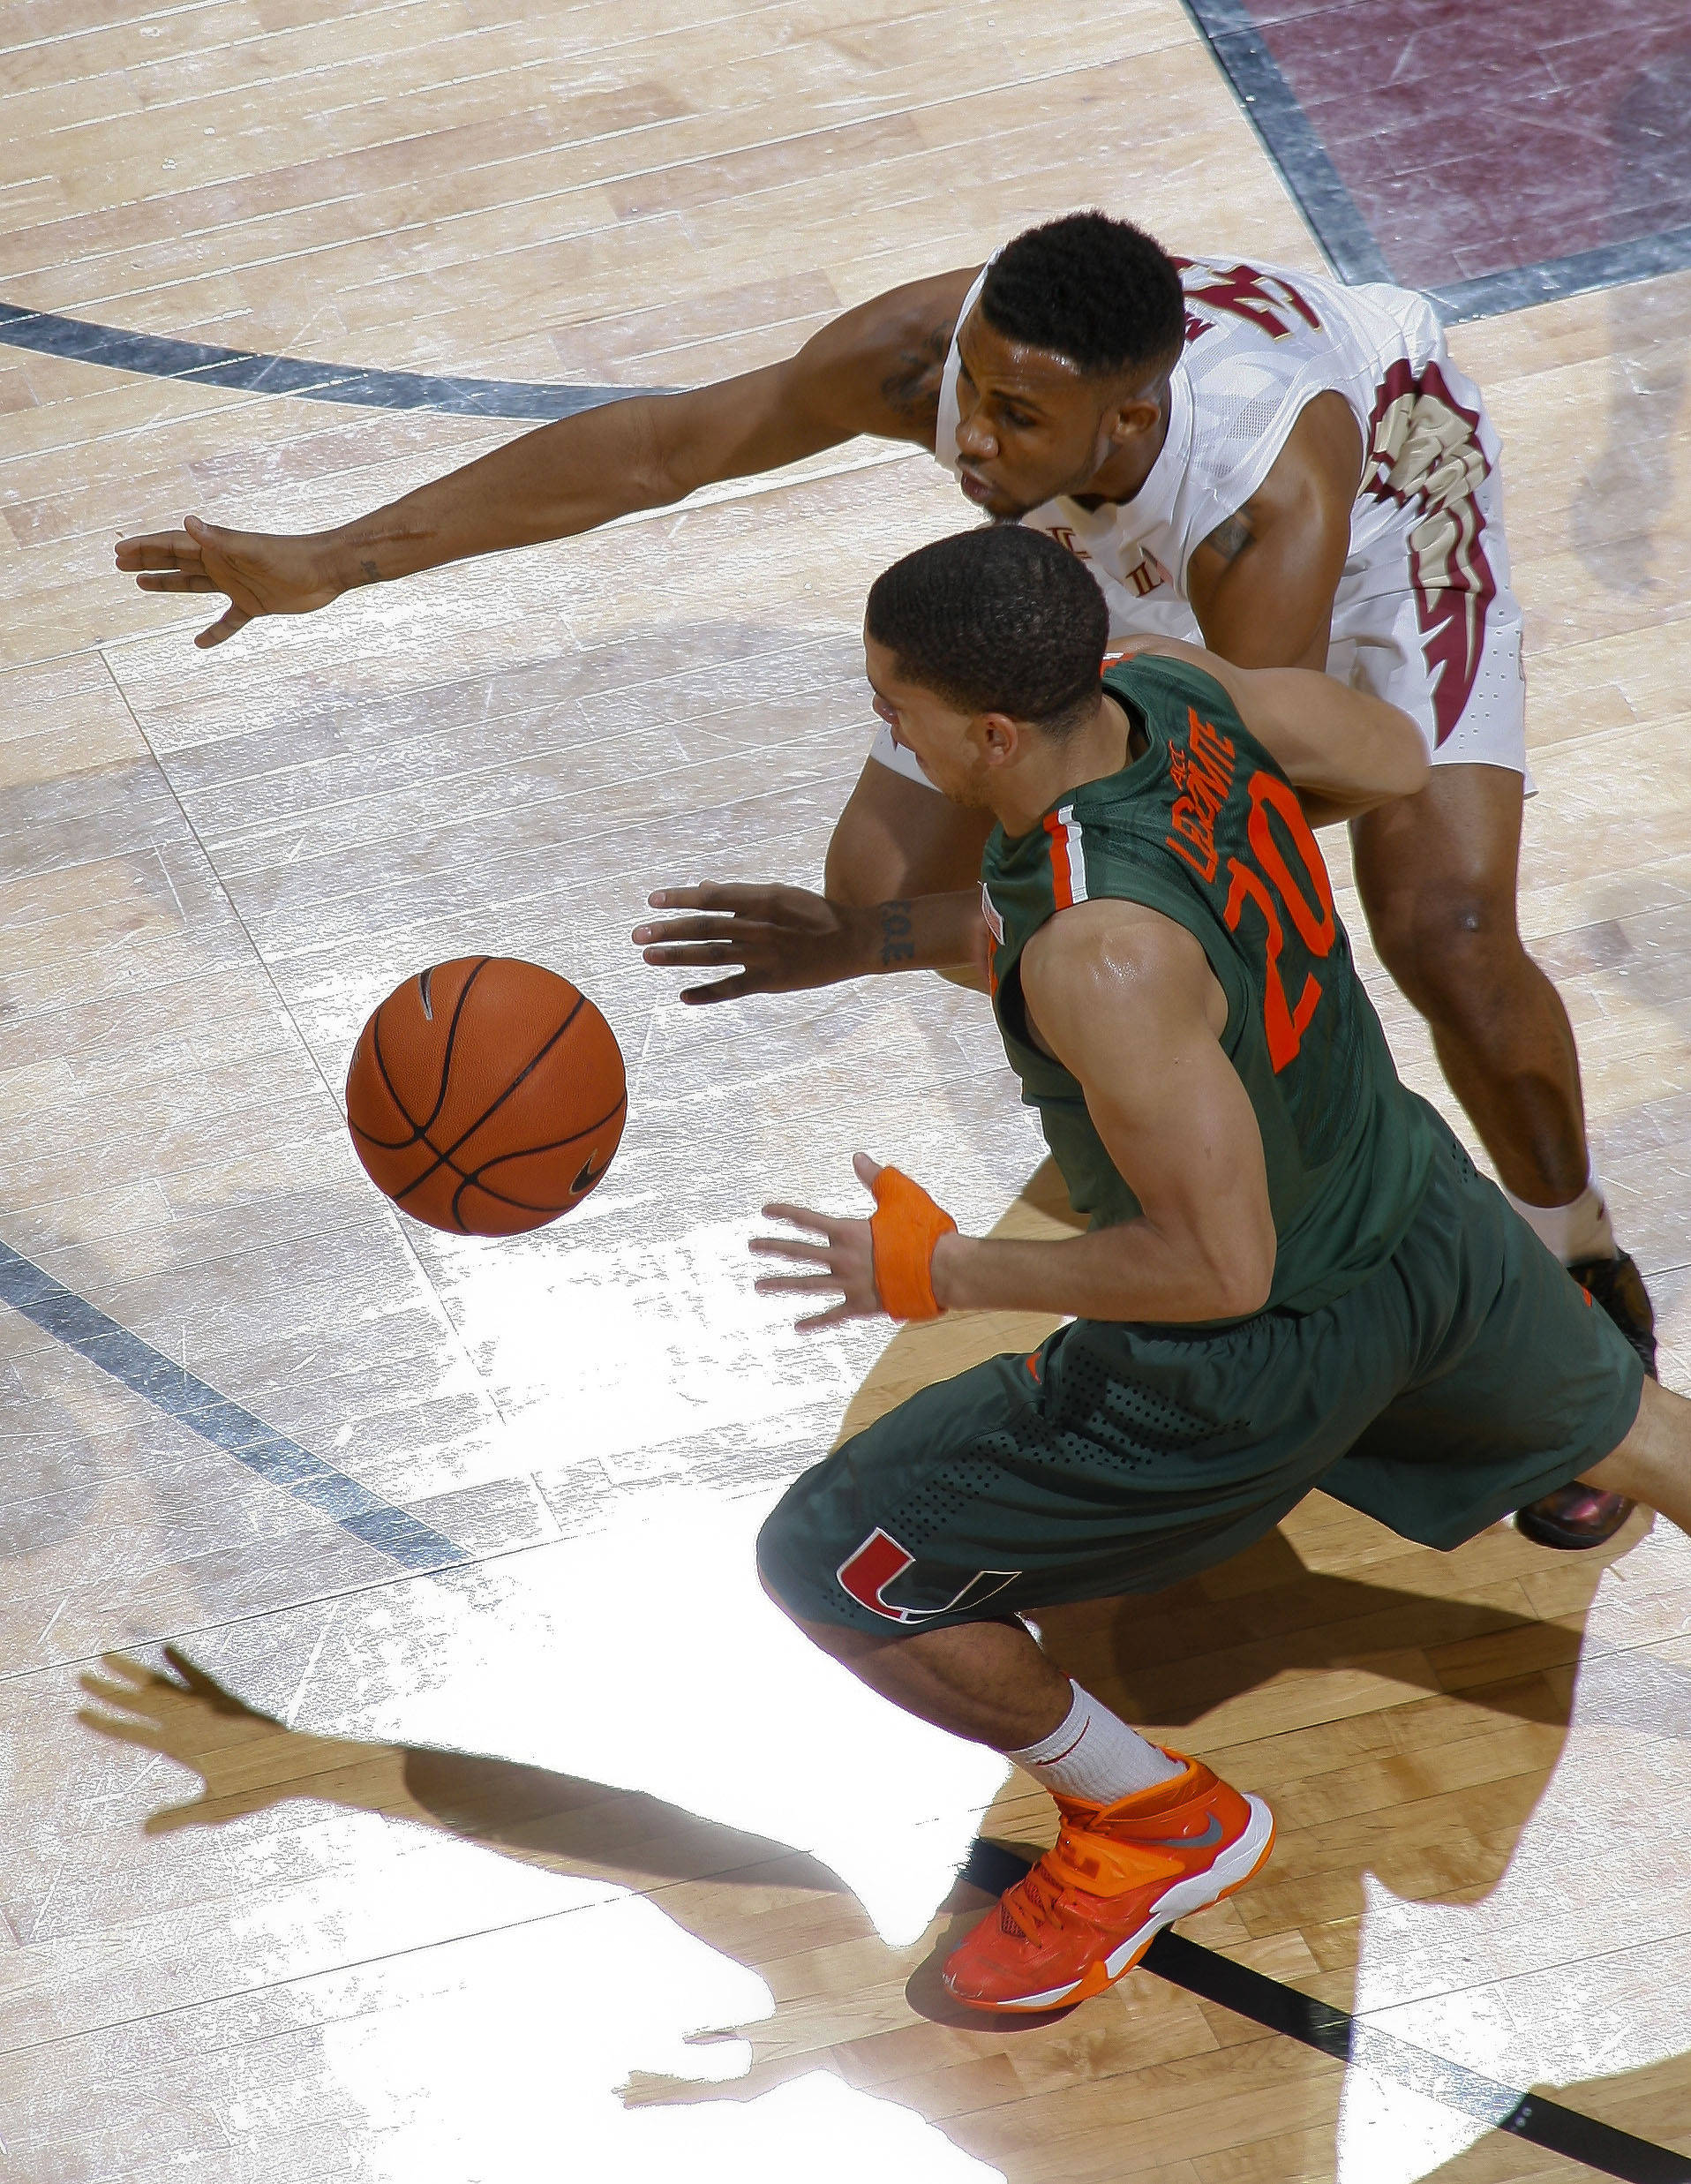 Feb 10, 2014; Tallahassee, FL, USA; Seminoles guard Ian Miller (30) and Miami Hurricanes guard Manu Lecomte (20) chase a loose ball in the first half. Phil Sears-USA TODAY Sports